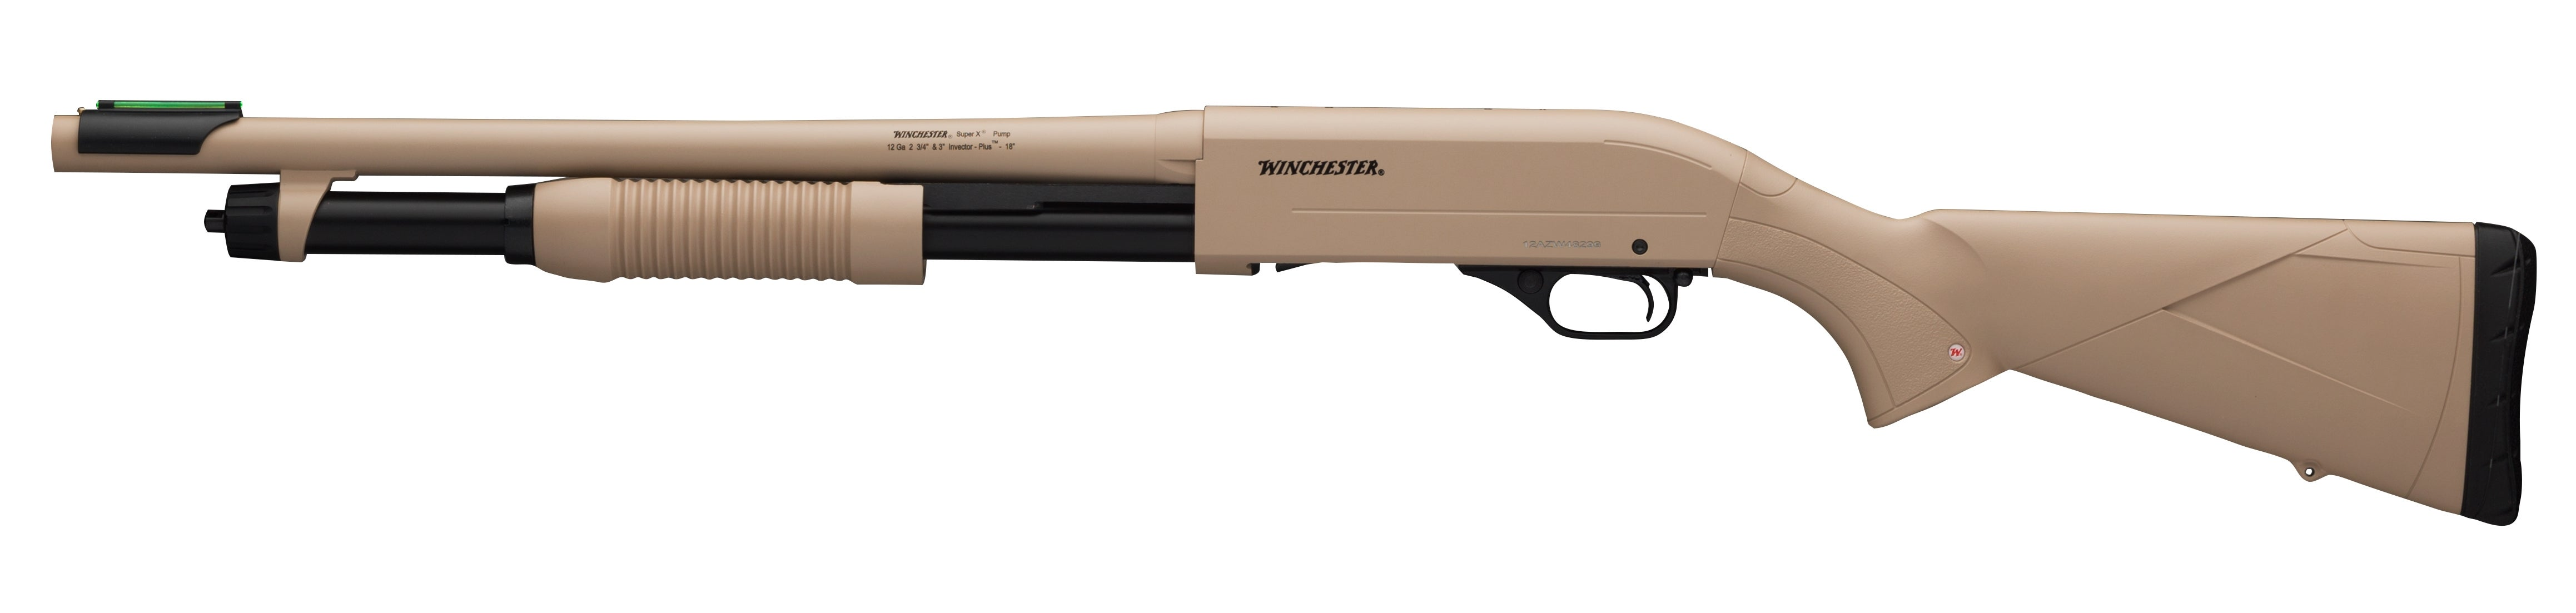 All About Winchester Bobs Gun Shop Parts For Many Marlin Model 1894 Diagram Obsolete Dealers Upcomingcarshqcom